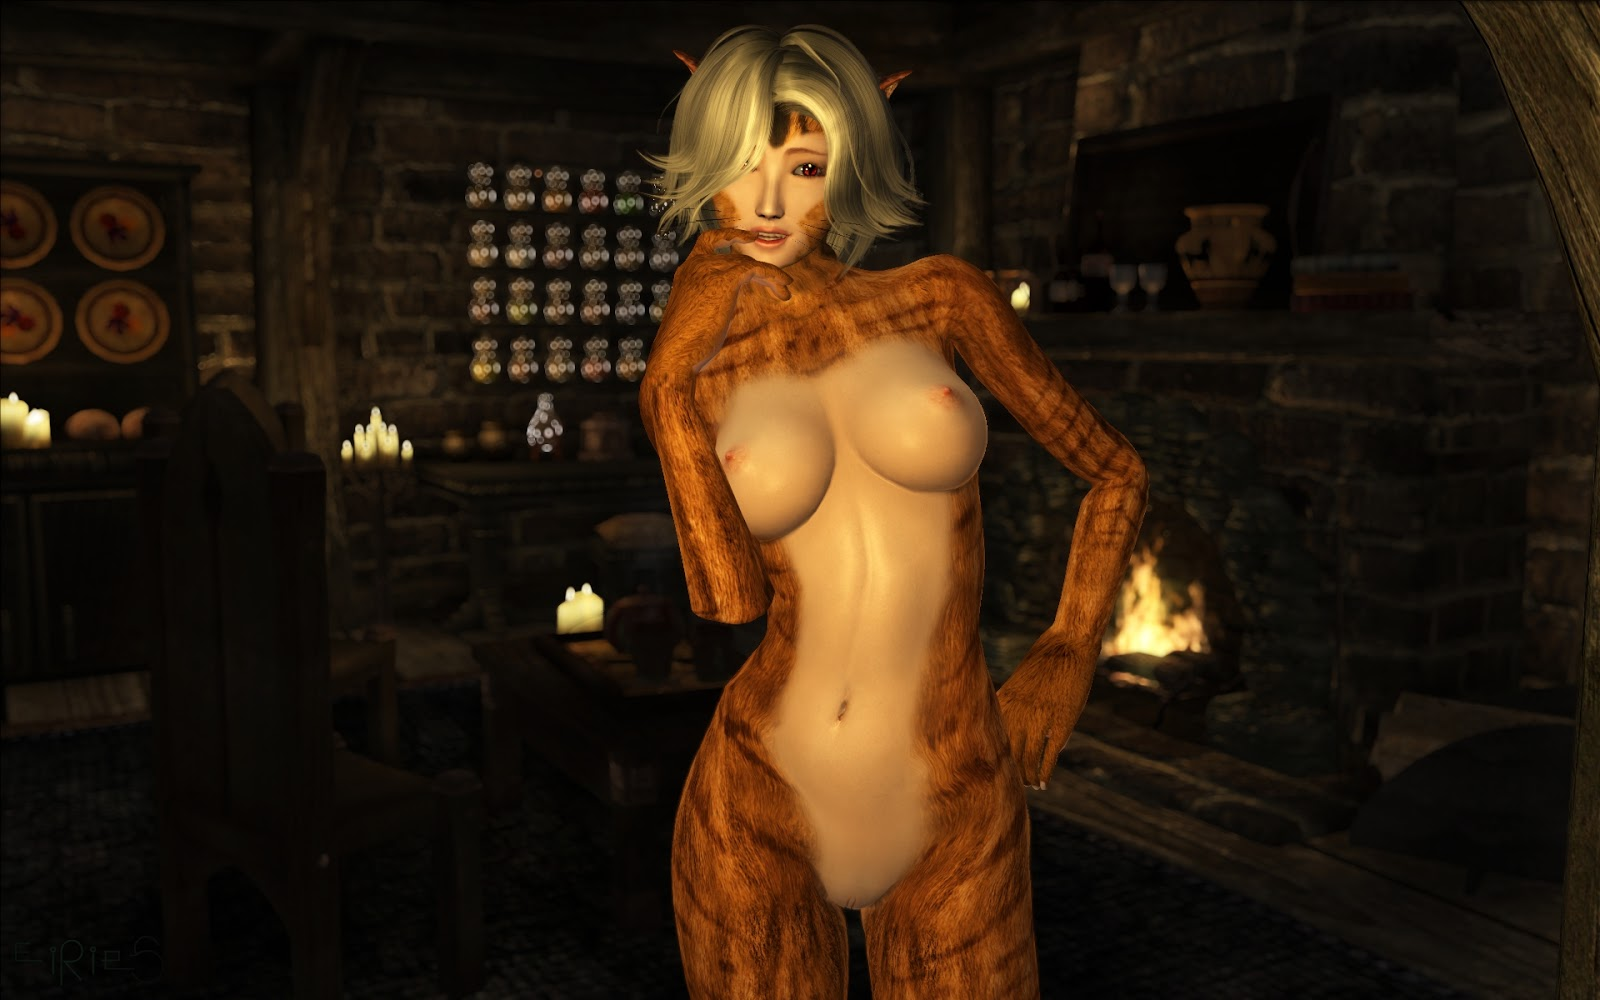 World of warcraft sex photos erotic video